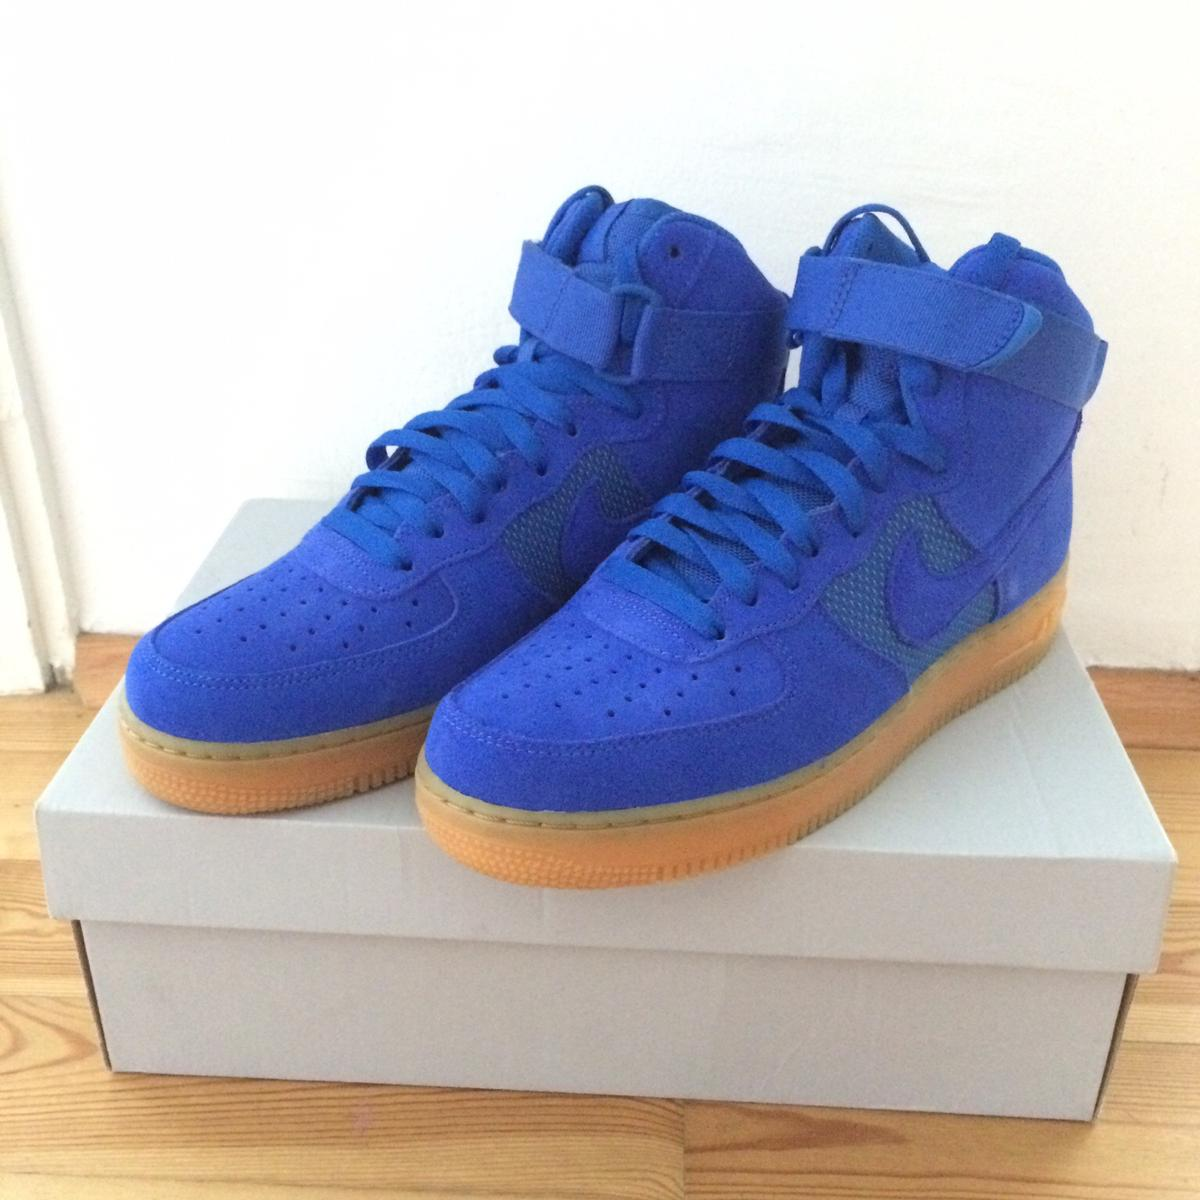 Nike Air Force 1 High 07' LV8 in 80331 München for ?90.00